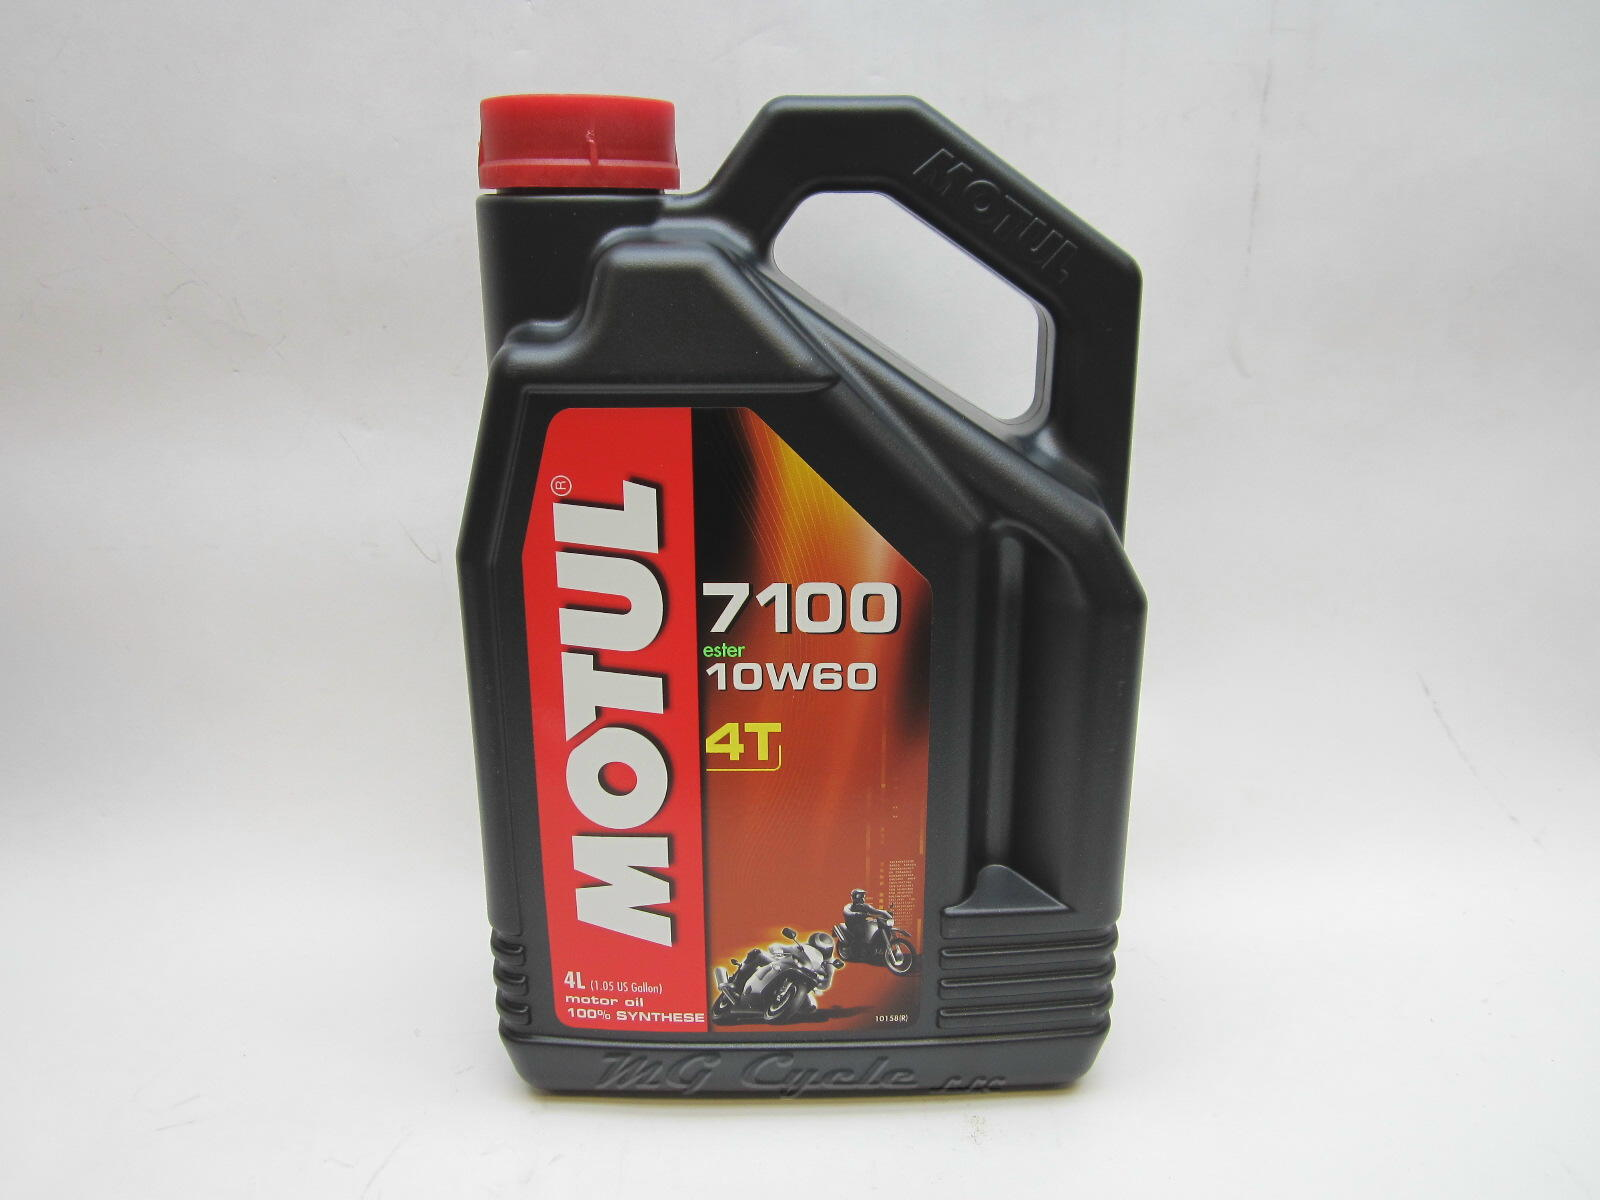 4 Liter Motul 7100 4T 10W60 synthetic ester motor oil